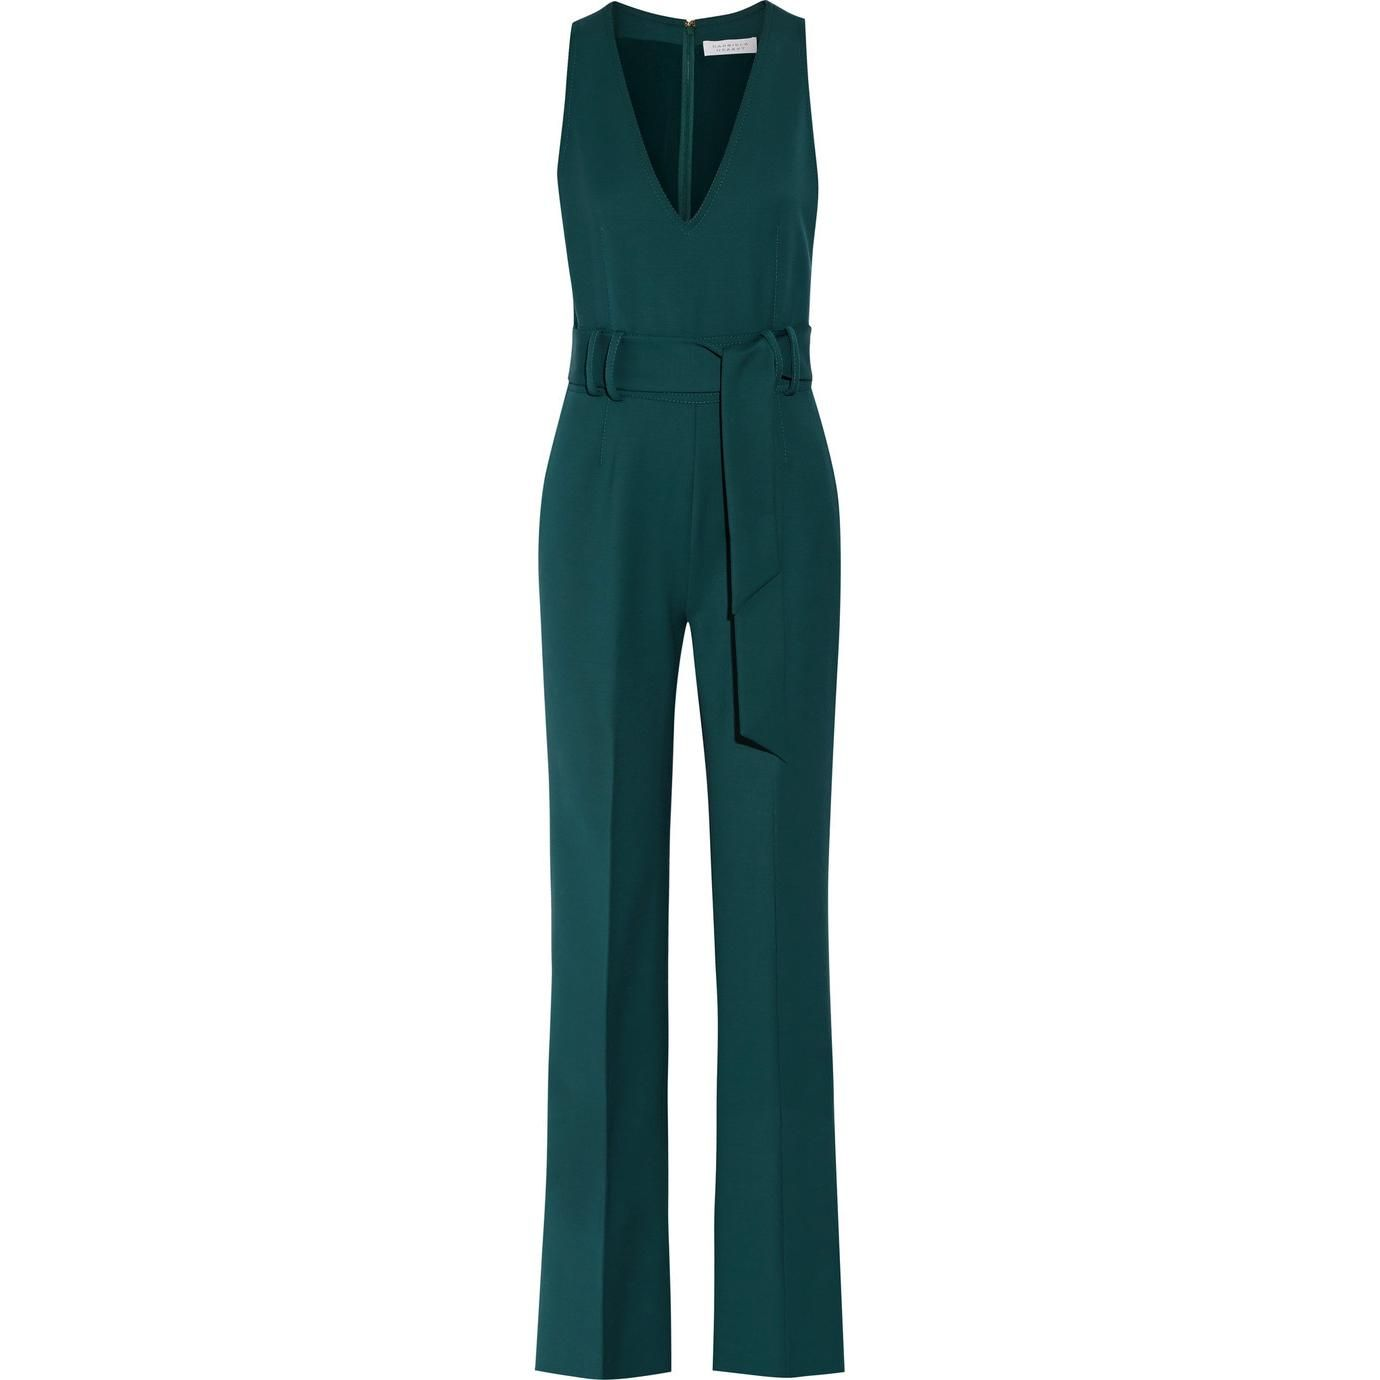 DUNGAREES - Jumpsuits Gabriela Hearst Discount Recommend Buy Cheap Footlocker Pictures Free Shipping Pay With Paypal Outlet Very Cheap 2p6j0